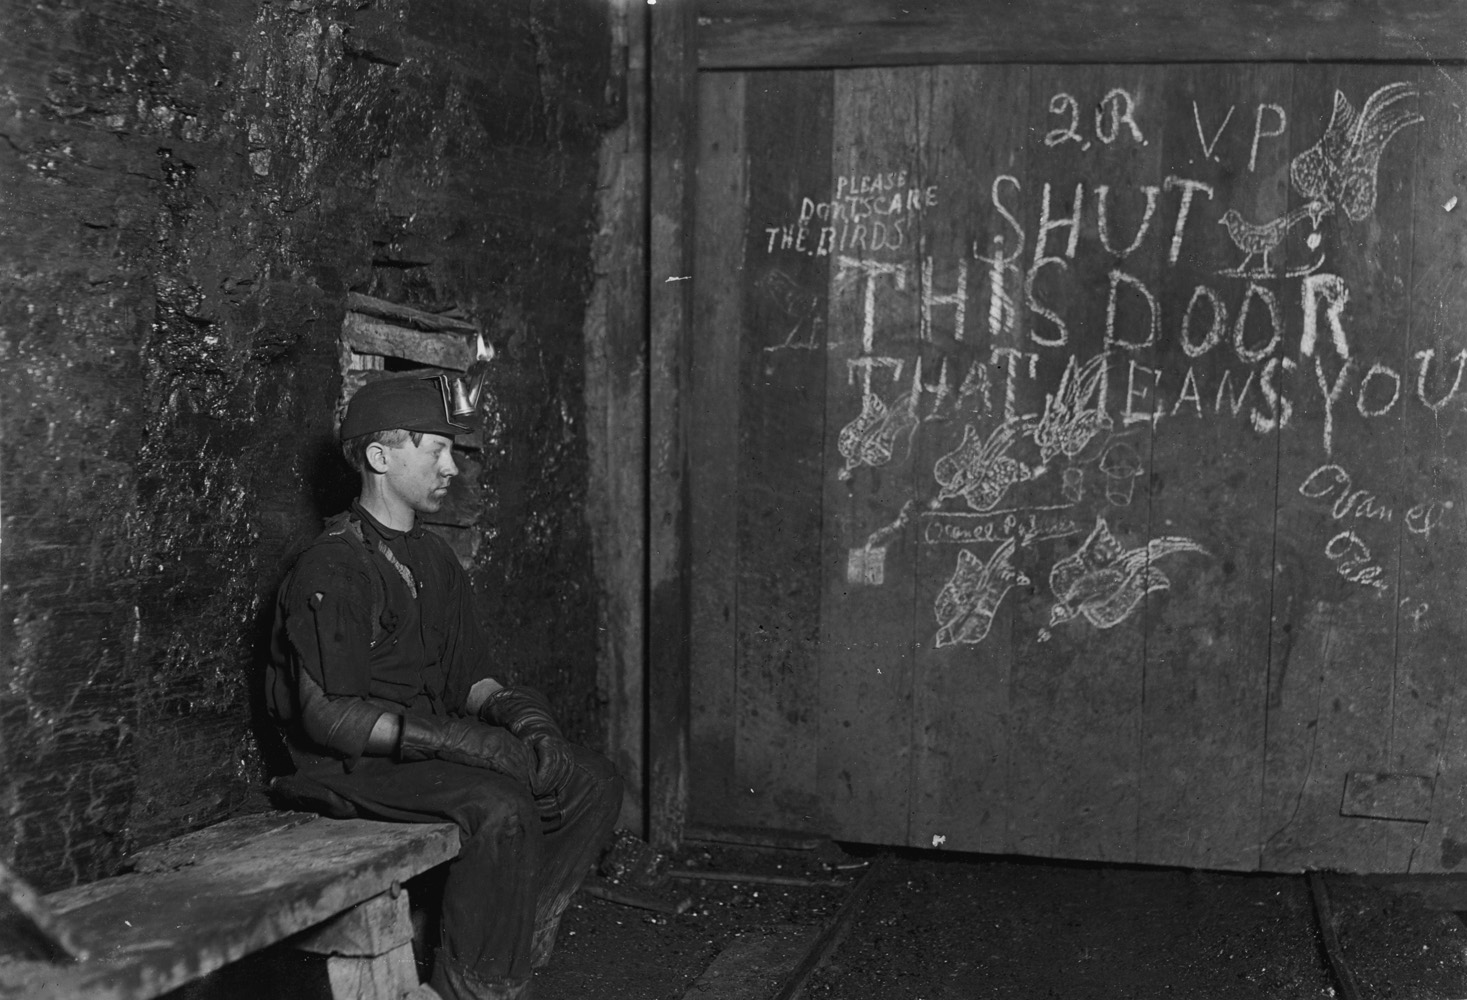 "Vance Palmer, trapper boy in coal mine, about 15 years old, Harrison County, West Virginia, 1908. Has trapped for several years in a West Va. Coal mine. $.75 a day for 10 hours work. All he does is to open and shut this door: most of the time he sits here idle, waiting for the cars to come. On account of the intense darkness in the mine, the hieroglyphics on the door were not visible until plate was developed.  —Hine's original caption                                                              ""I knew he had to work when he was young, but I didn't know he worked at the mine. I remember him telling me that he went down in the mines once and said he would never work there."" —Son of Vance Palmer"